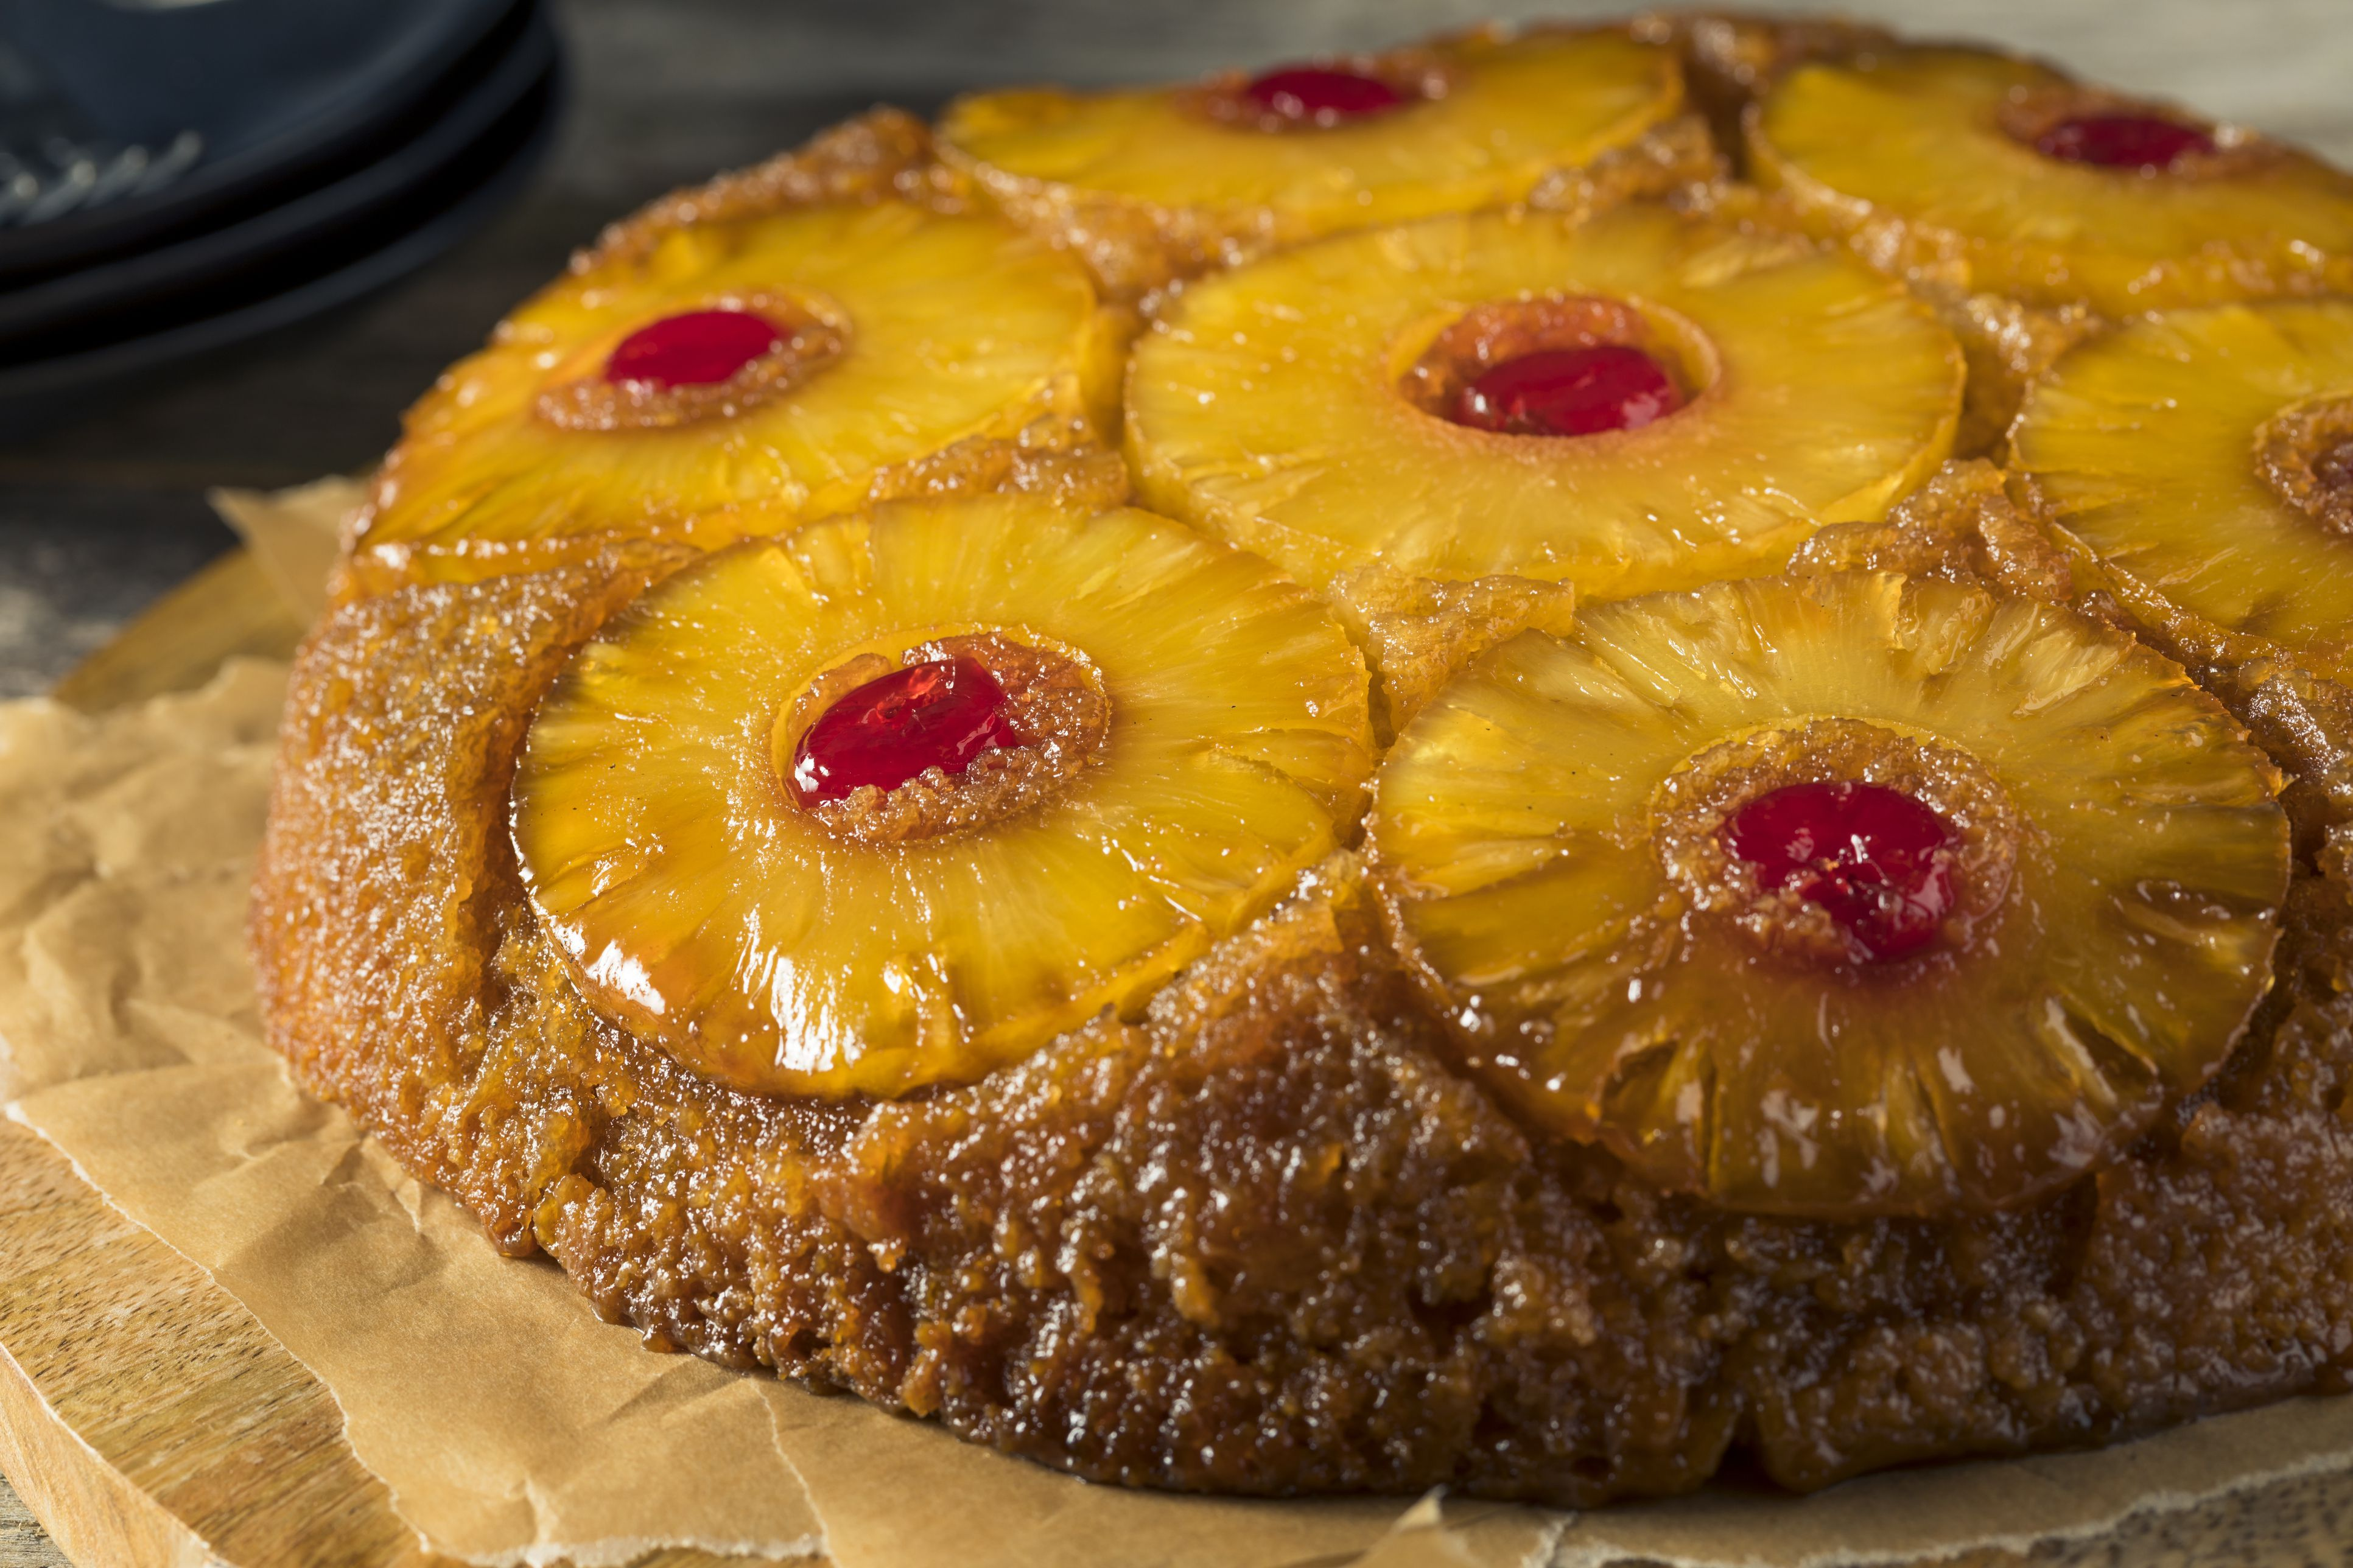 Sweet homemade pineapple upside-down cake on a wooden cutting board